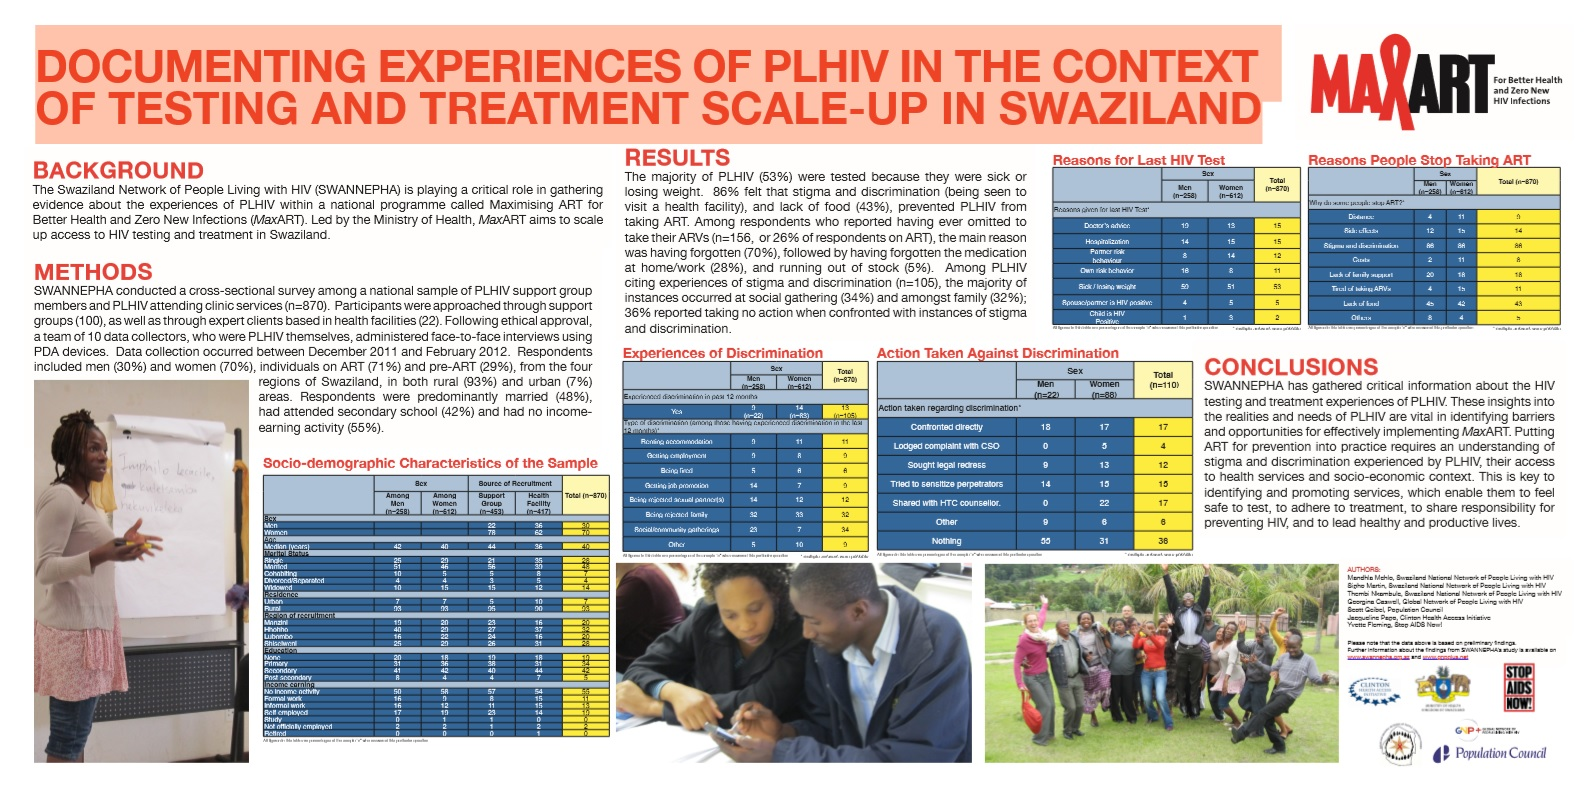 Documenting experiences of PLHIV in the context of testing and treatment scale-up in Swaziland